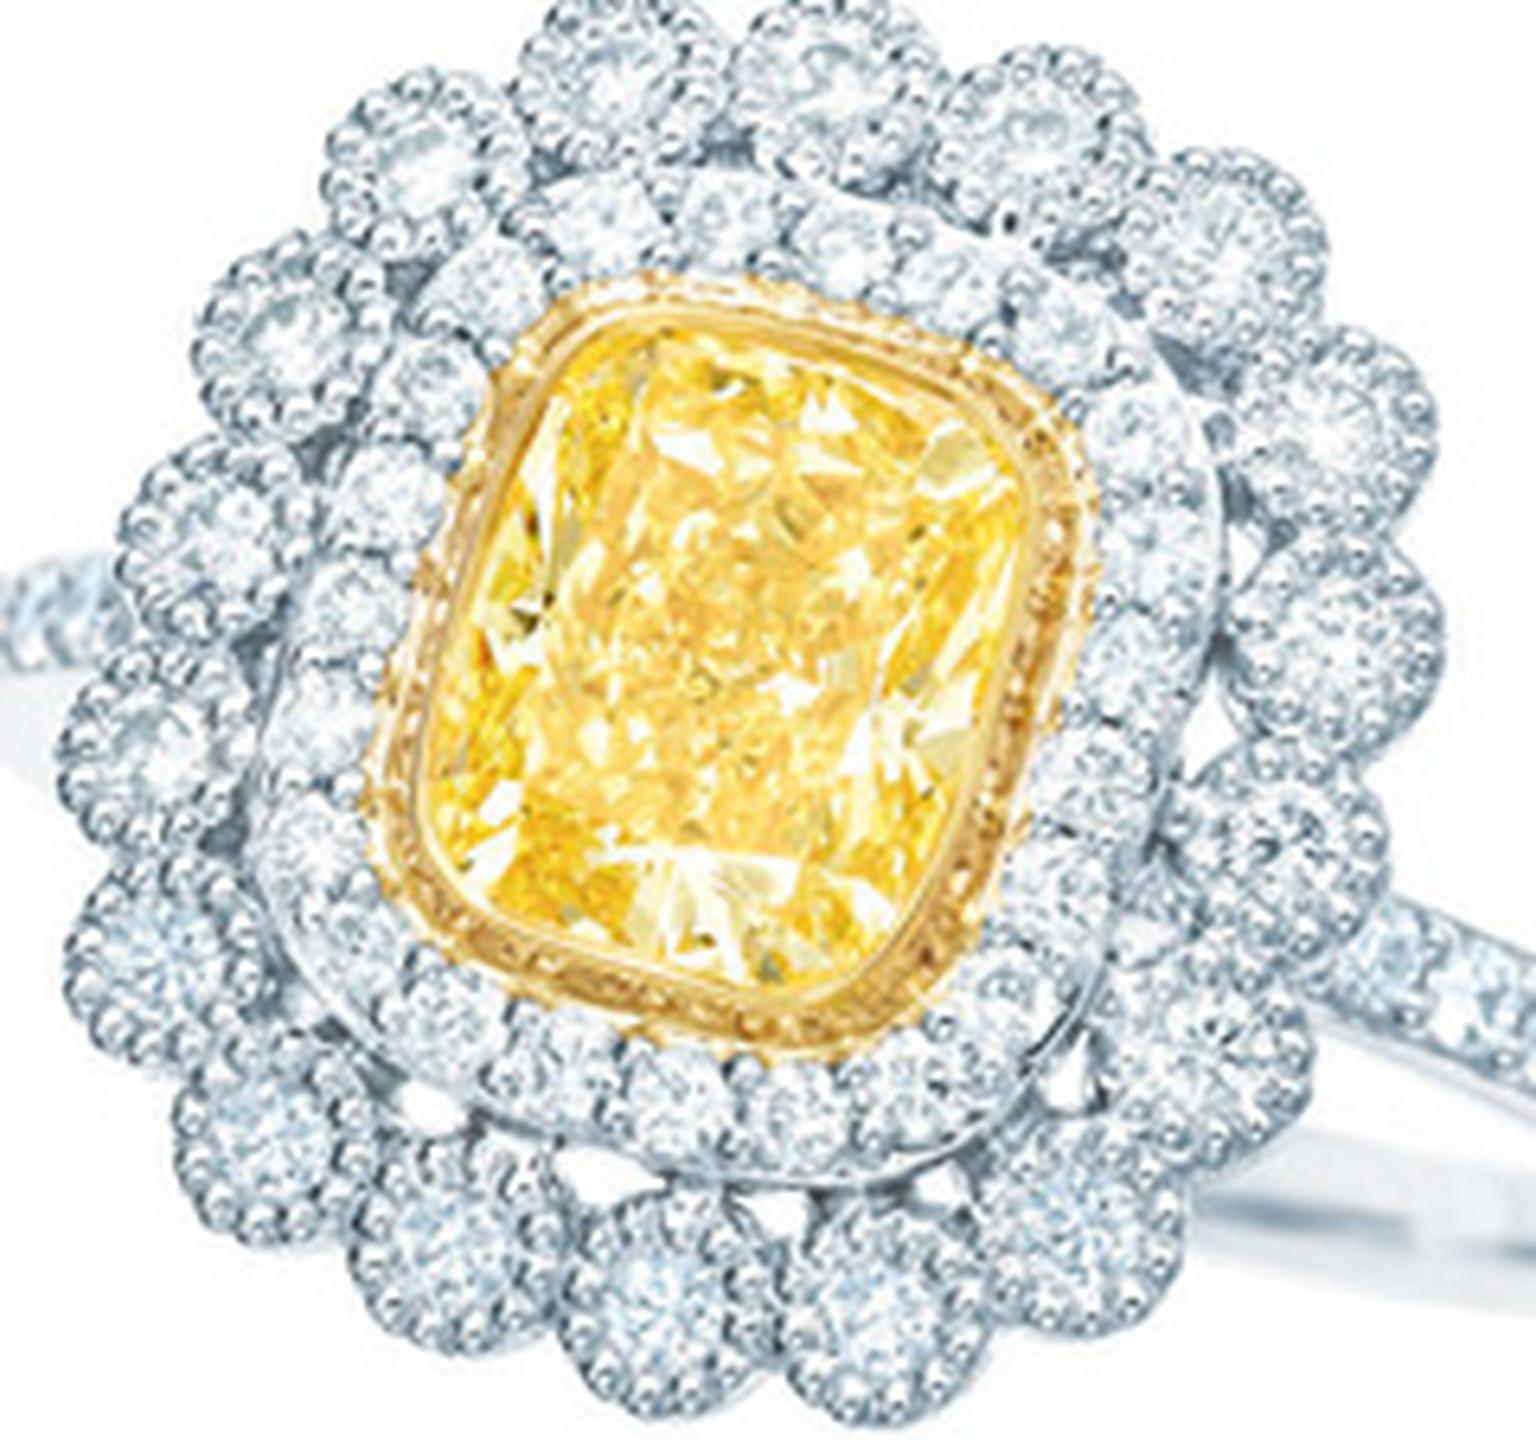 HP240x245Tiffany-Enchant-yellow-and-white-diamond-rings-set-in-platinum.jpg